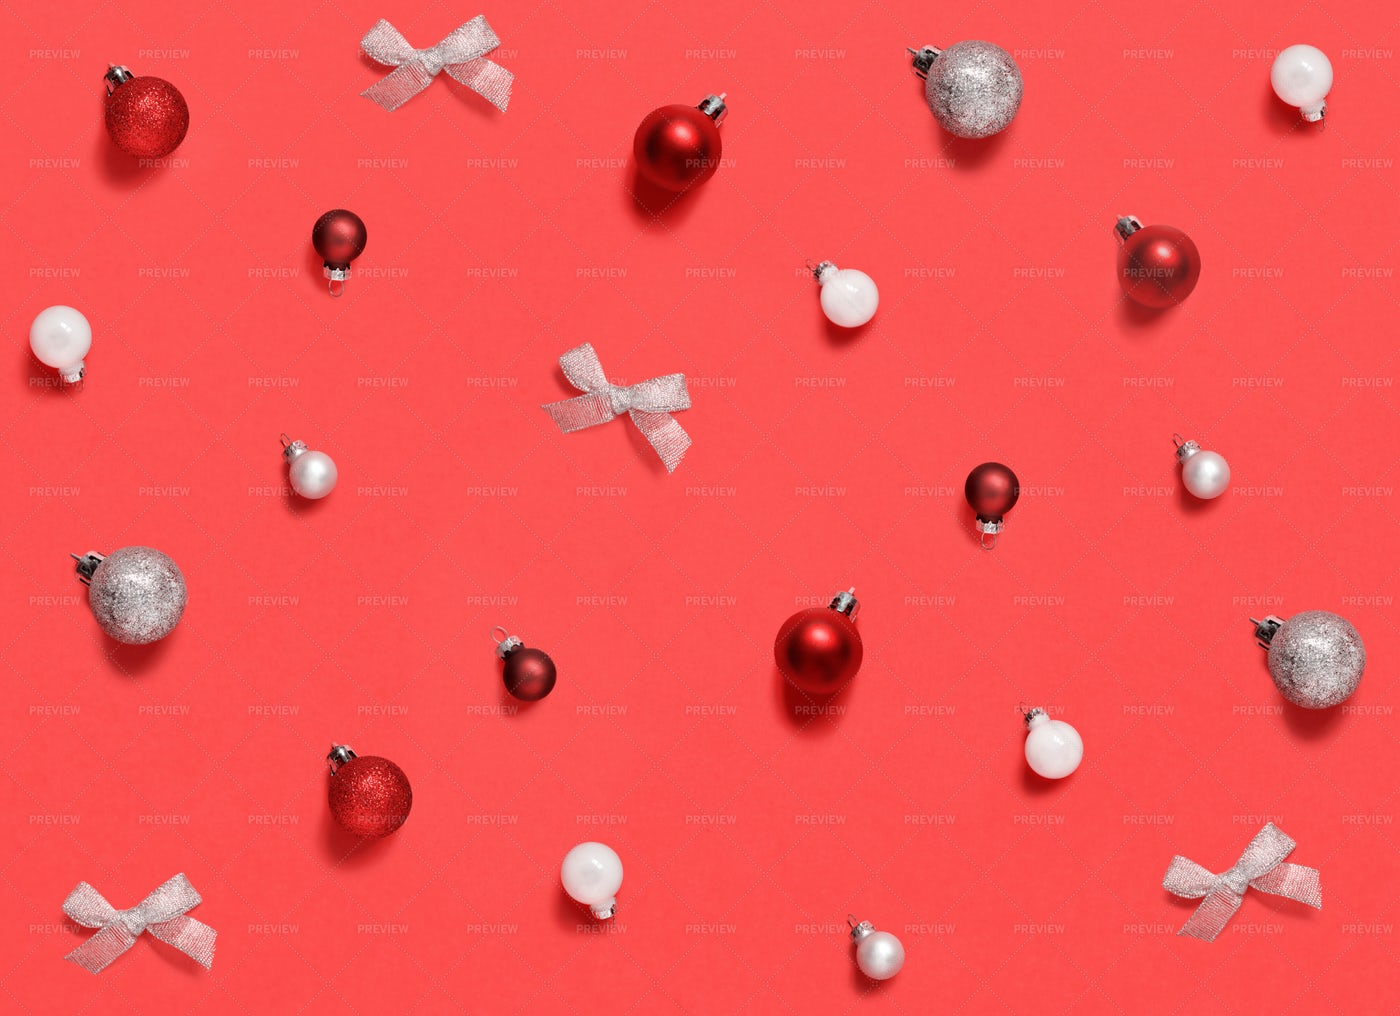 Red And White Christmas Decorations: Stock Photos